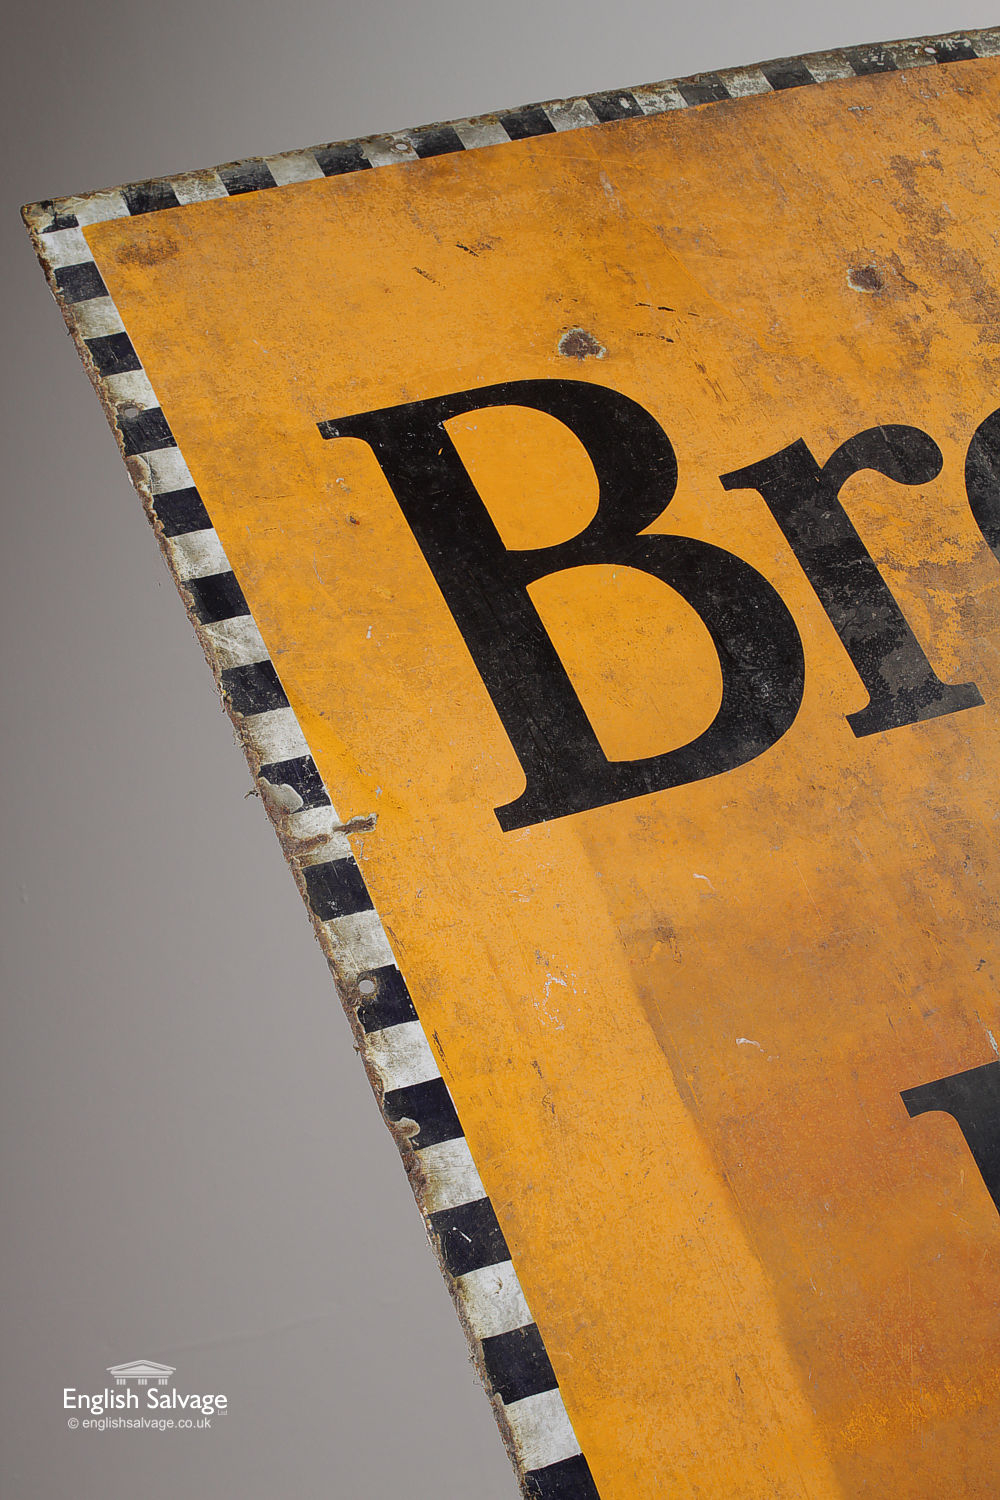 Authentic Vintage Enamel Brooke Bond Sign